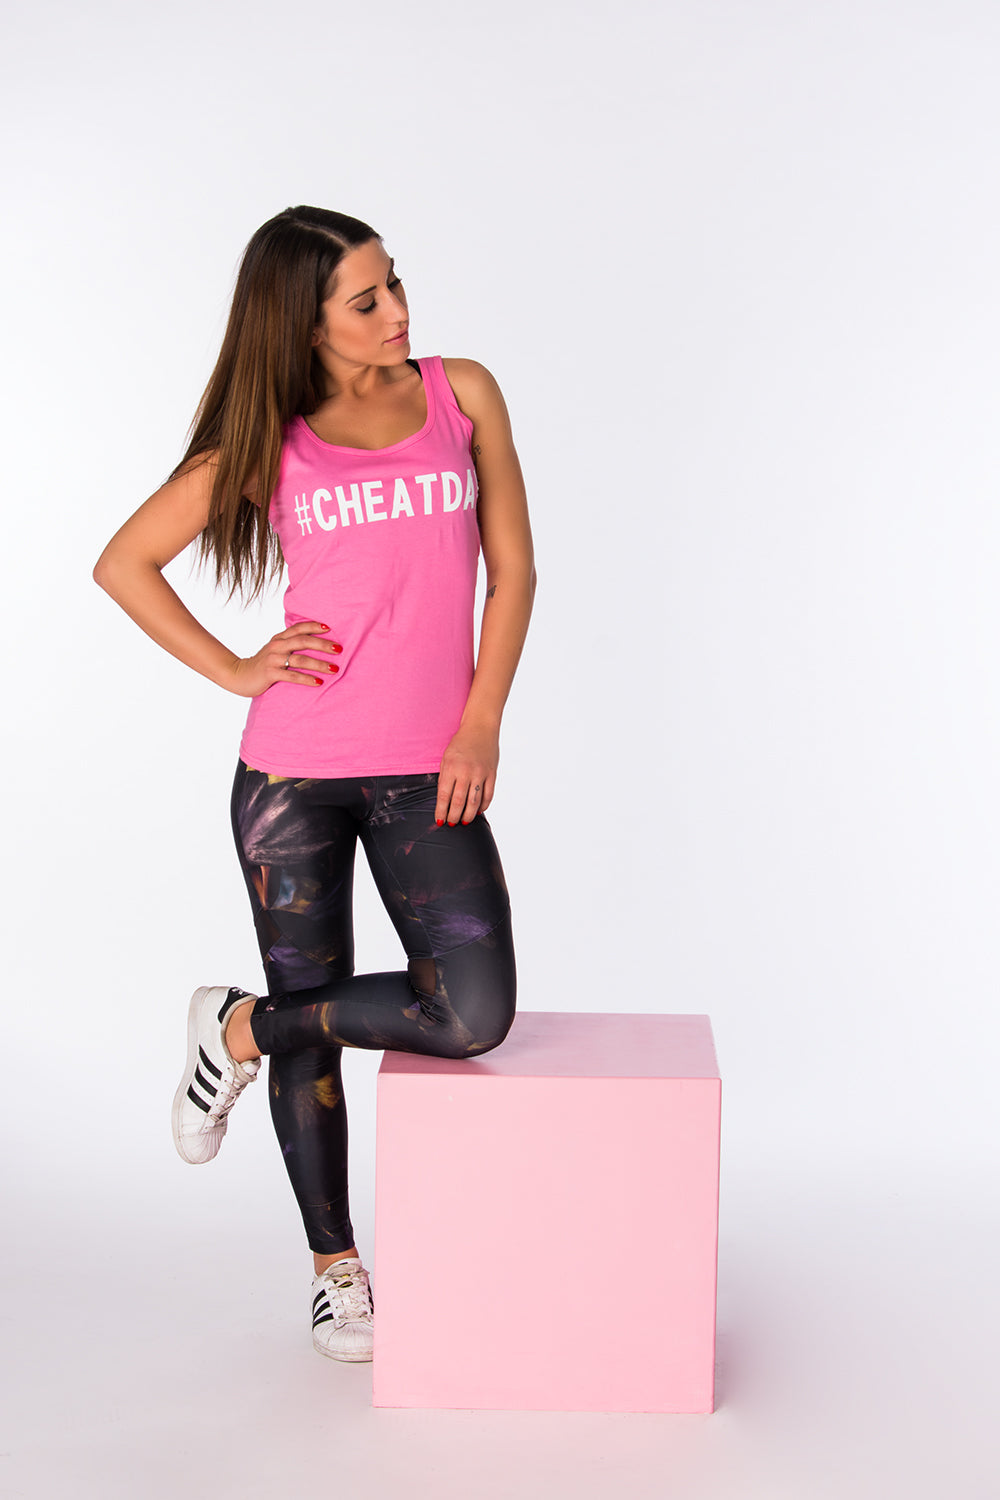 Cheatday top - For Women